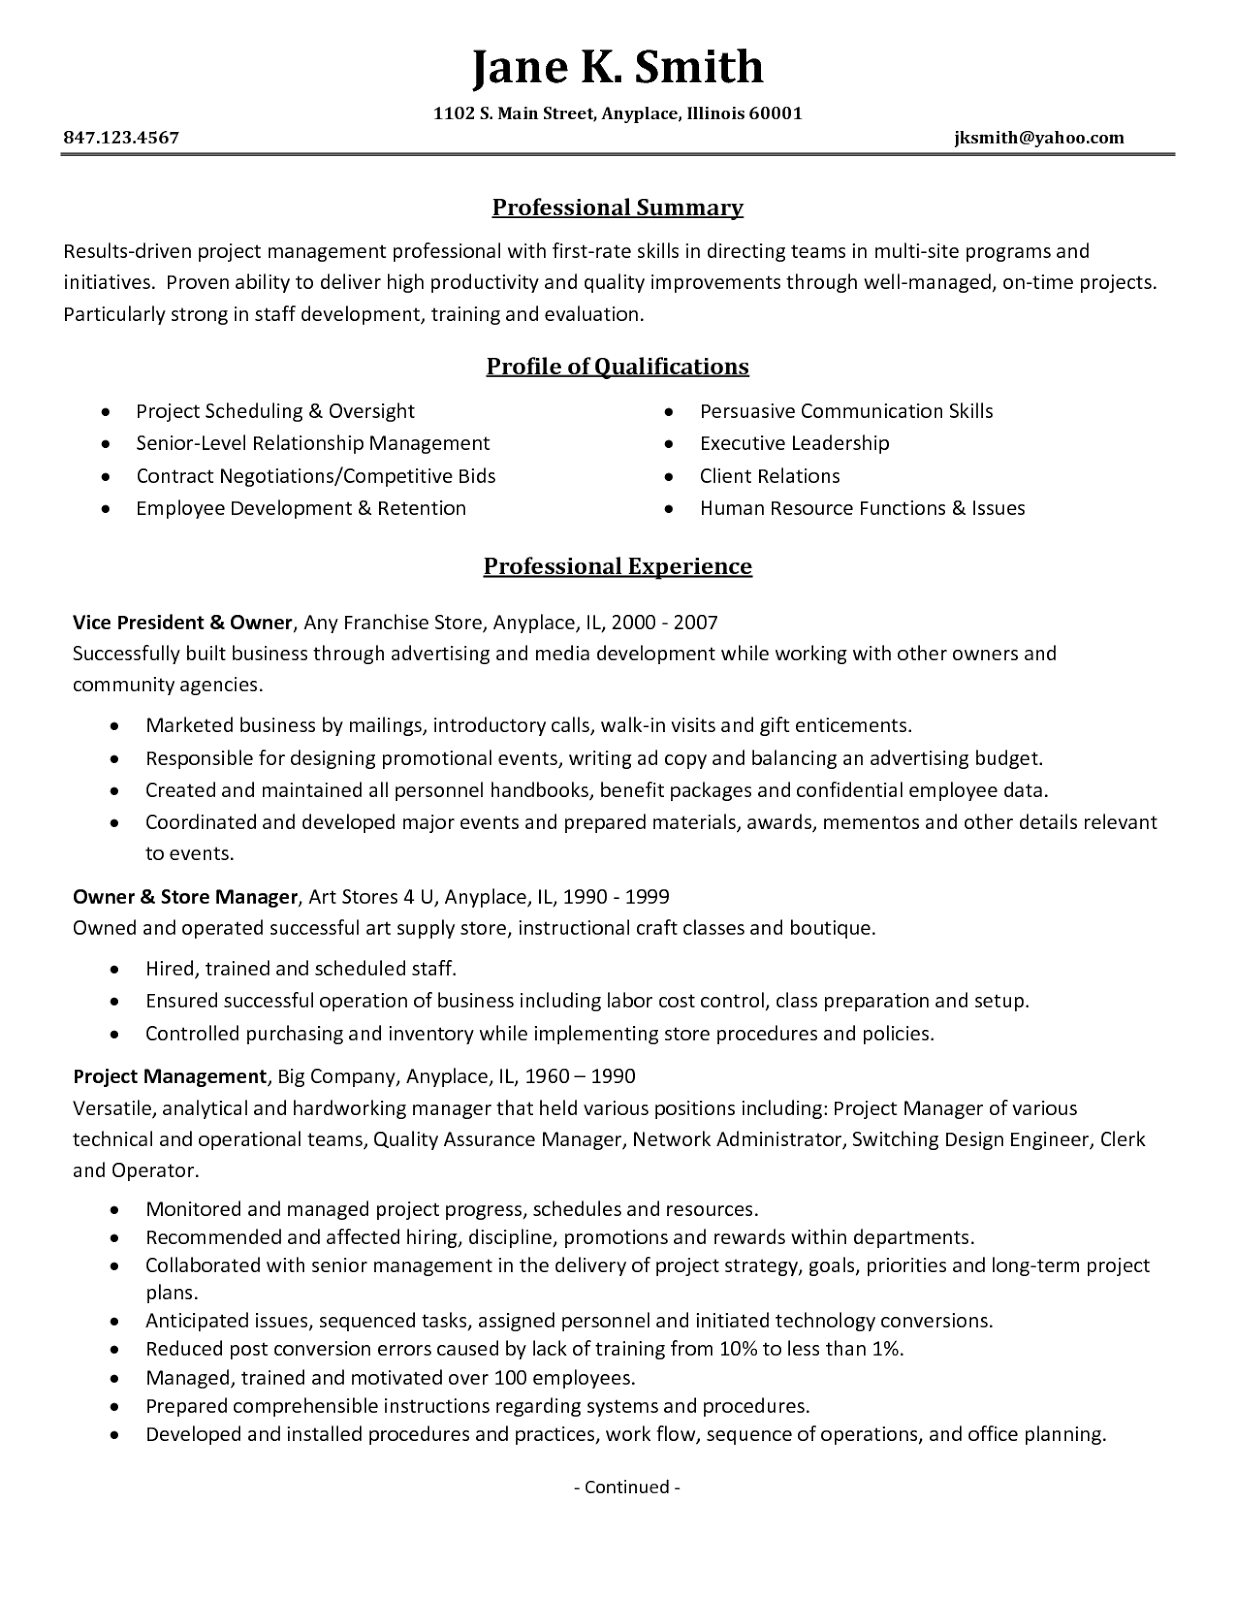 Management Skills For A Resume Project Management Resume Samples 2016 Sample Resumes